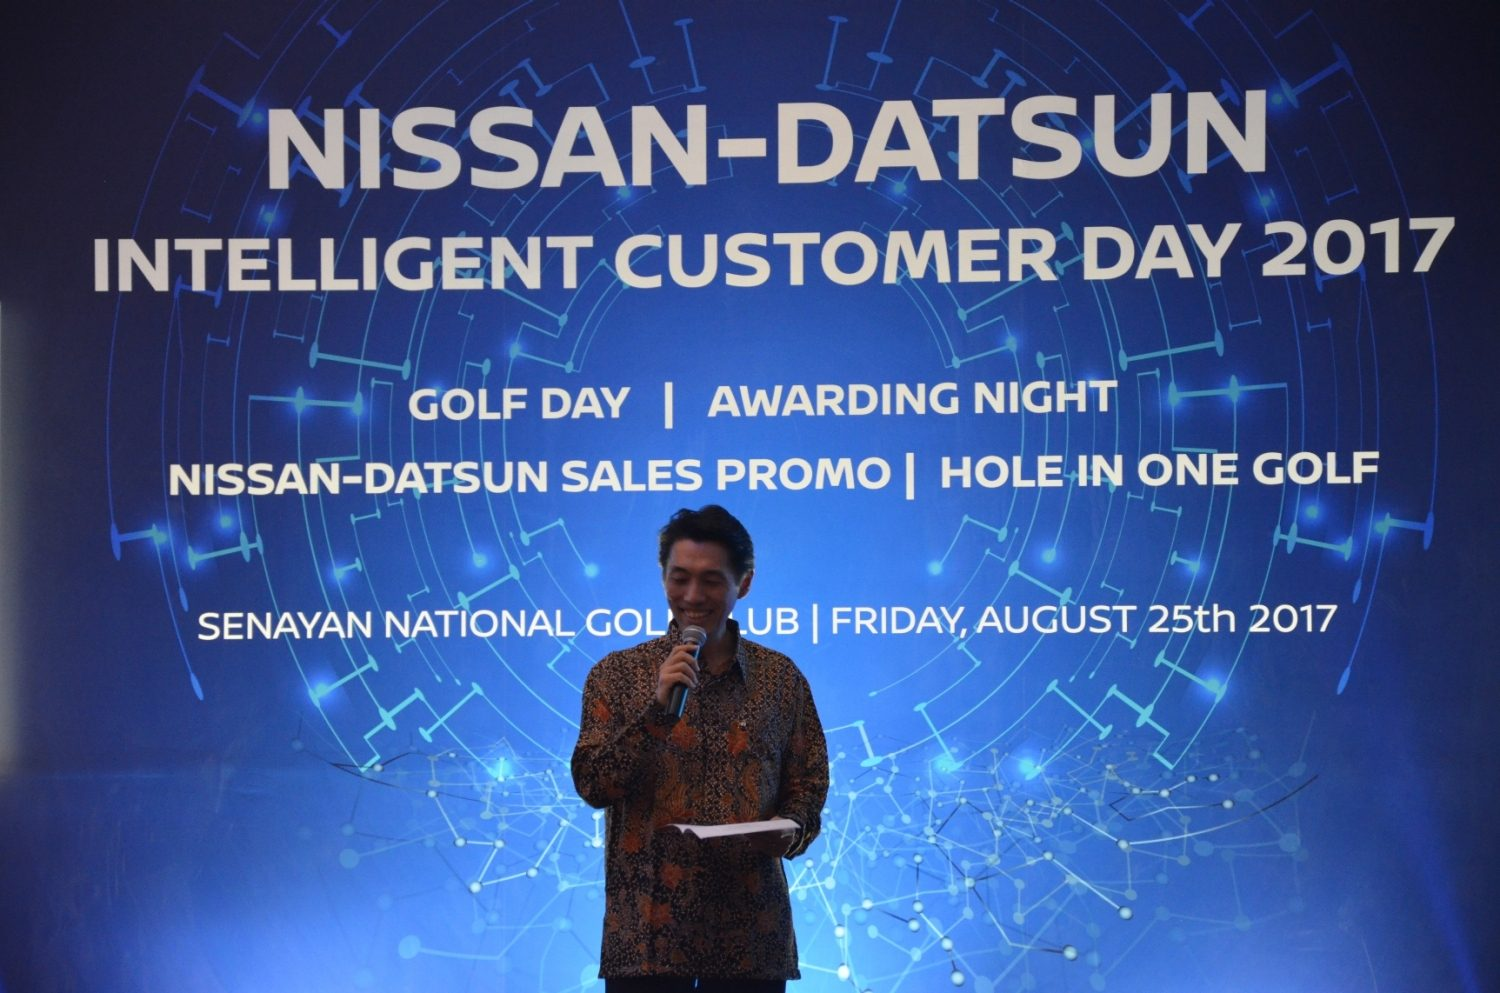 Bapak Eiichi Koito Memberikan Opening Speech dalam acara Gala Dinner Nissan Datsun Intelligent Customer Day